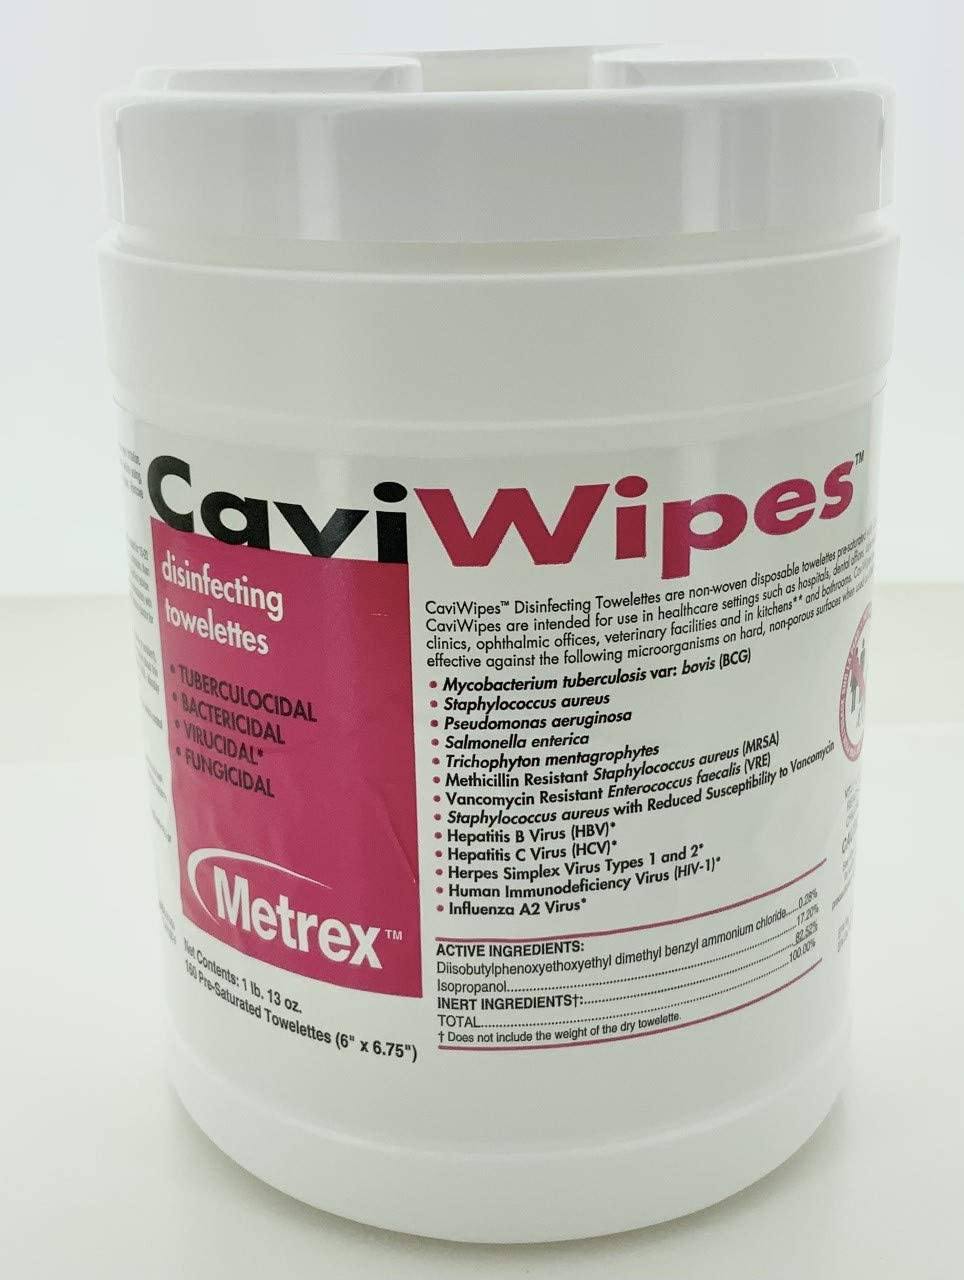 CaviWipes Metrex Towelettes Canister Wipes– for phone